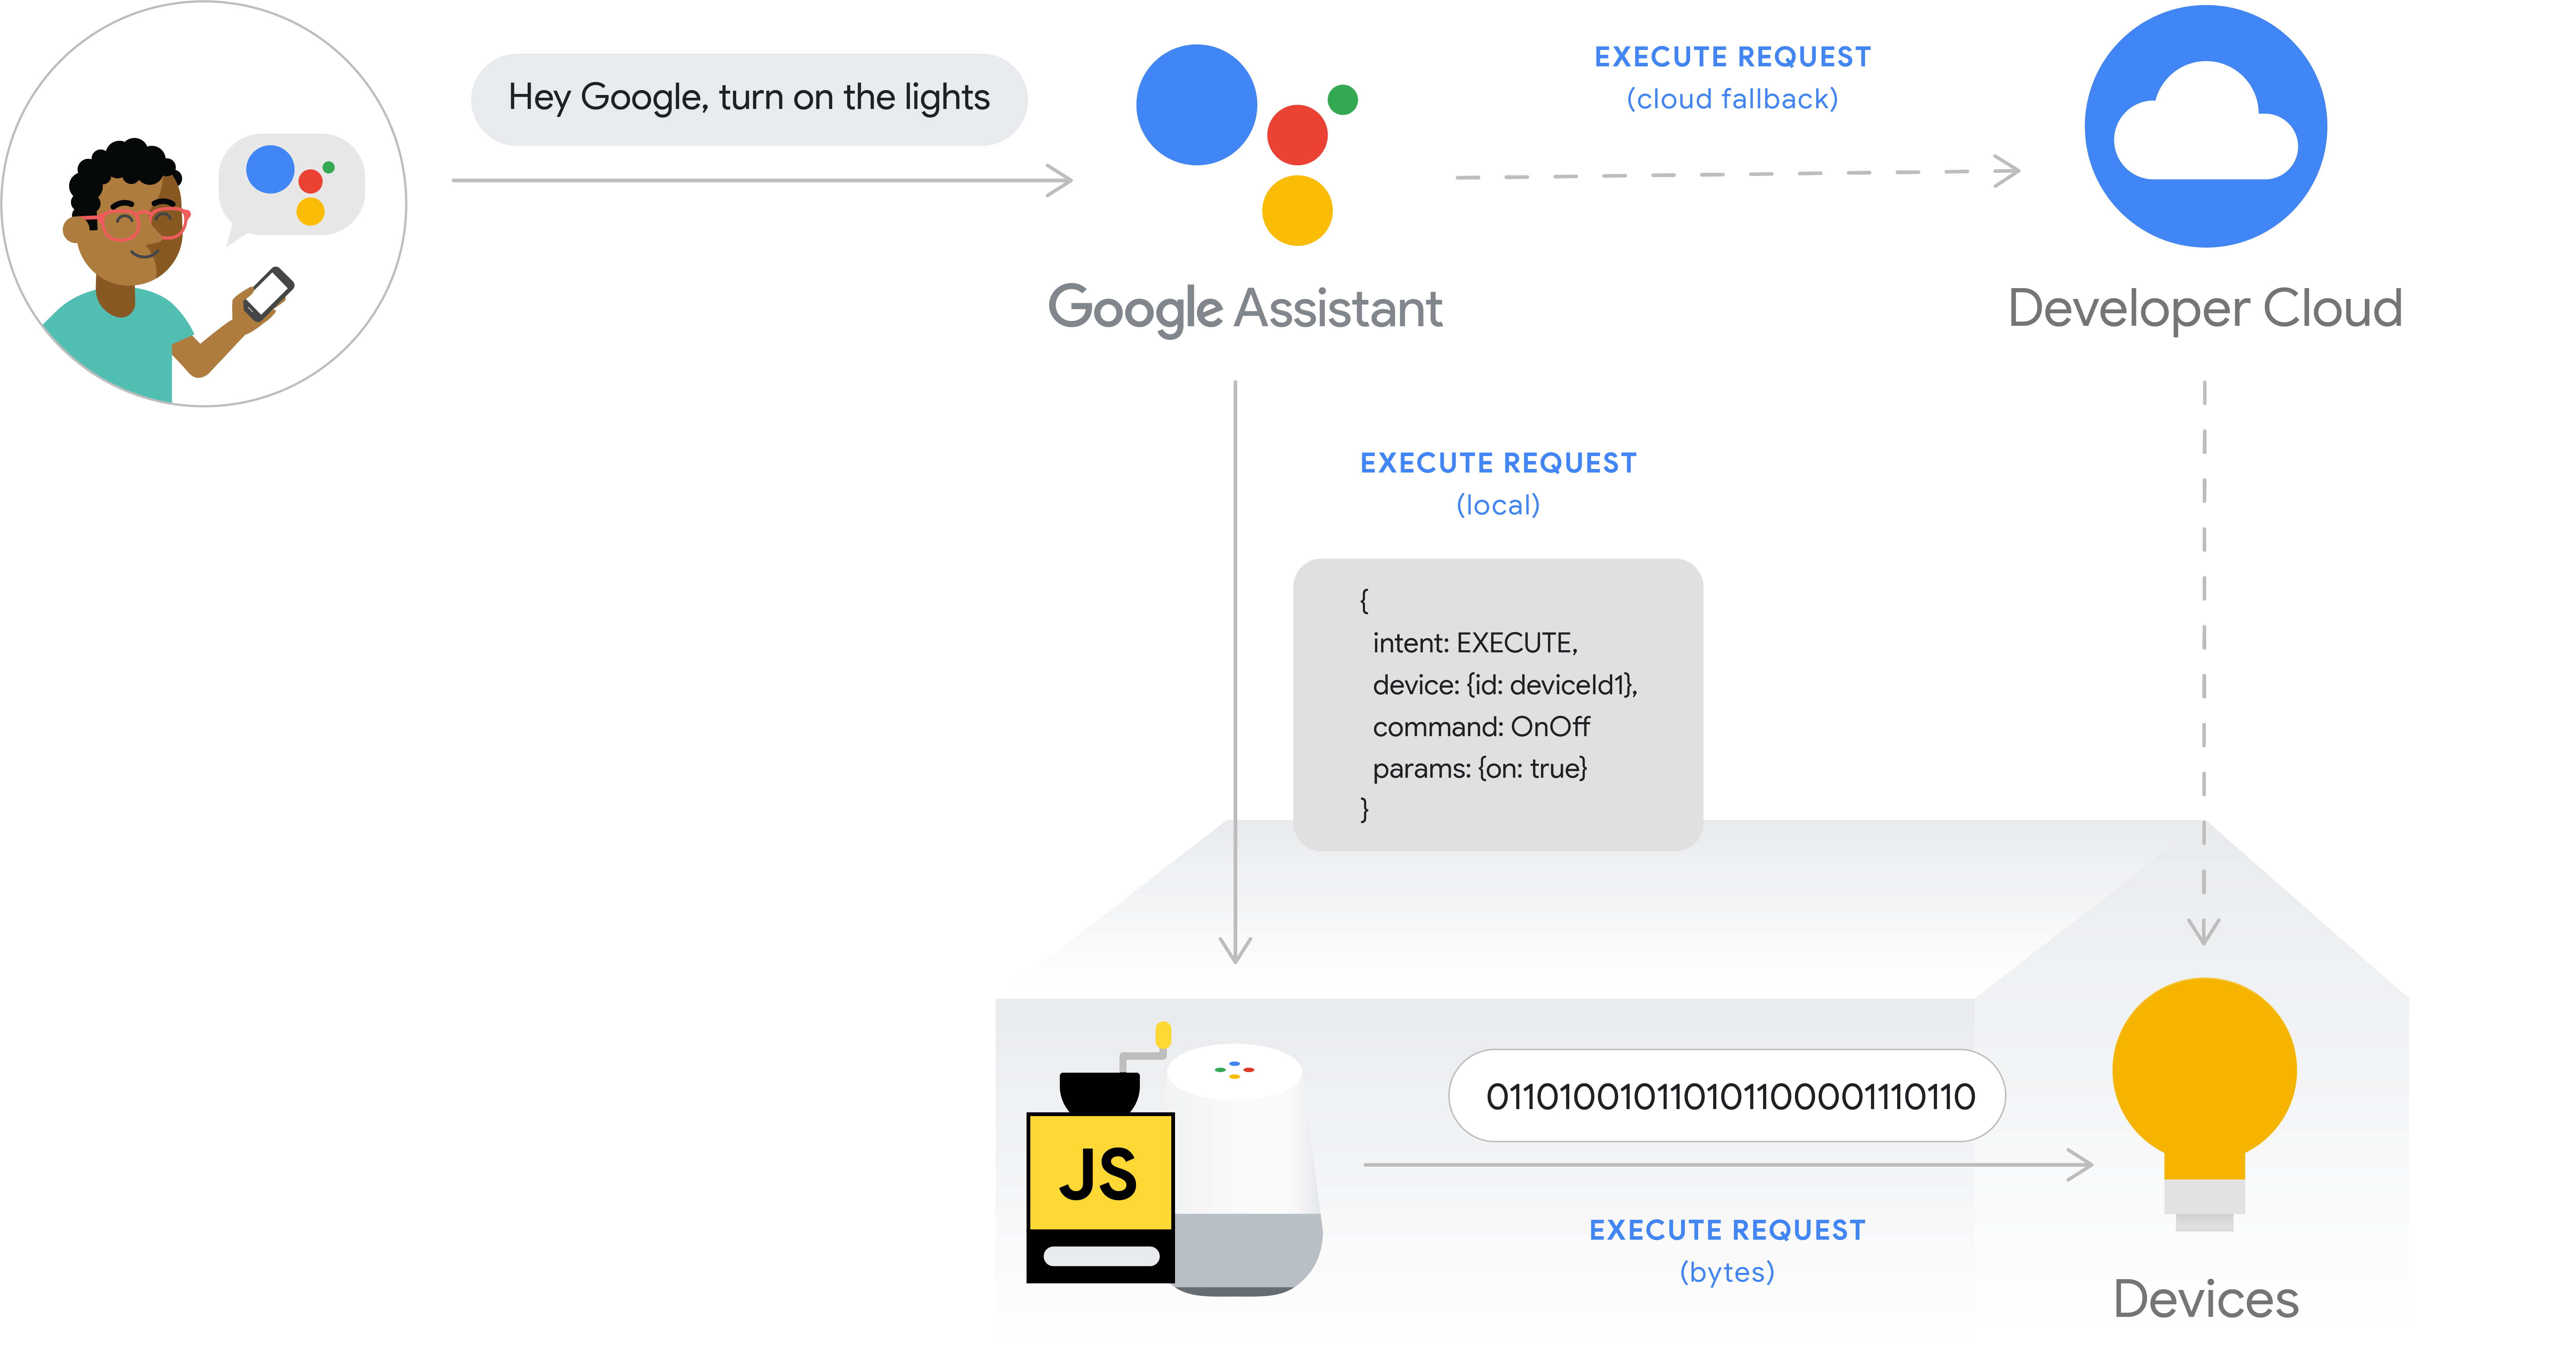 This figure shows the execution flow for local fulfillment. The             execution path captures a user's intent from a phone with the             Google Assistant, then the user intent is processed by             the Google Cloud, then it is executed locally on the Google Home             device and the command is issued directly to the device hub or             directly to the device. The developer cloud is available as a             cloud fallback.